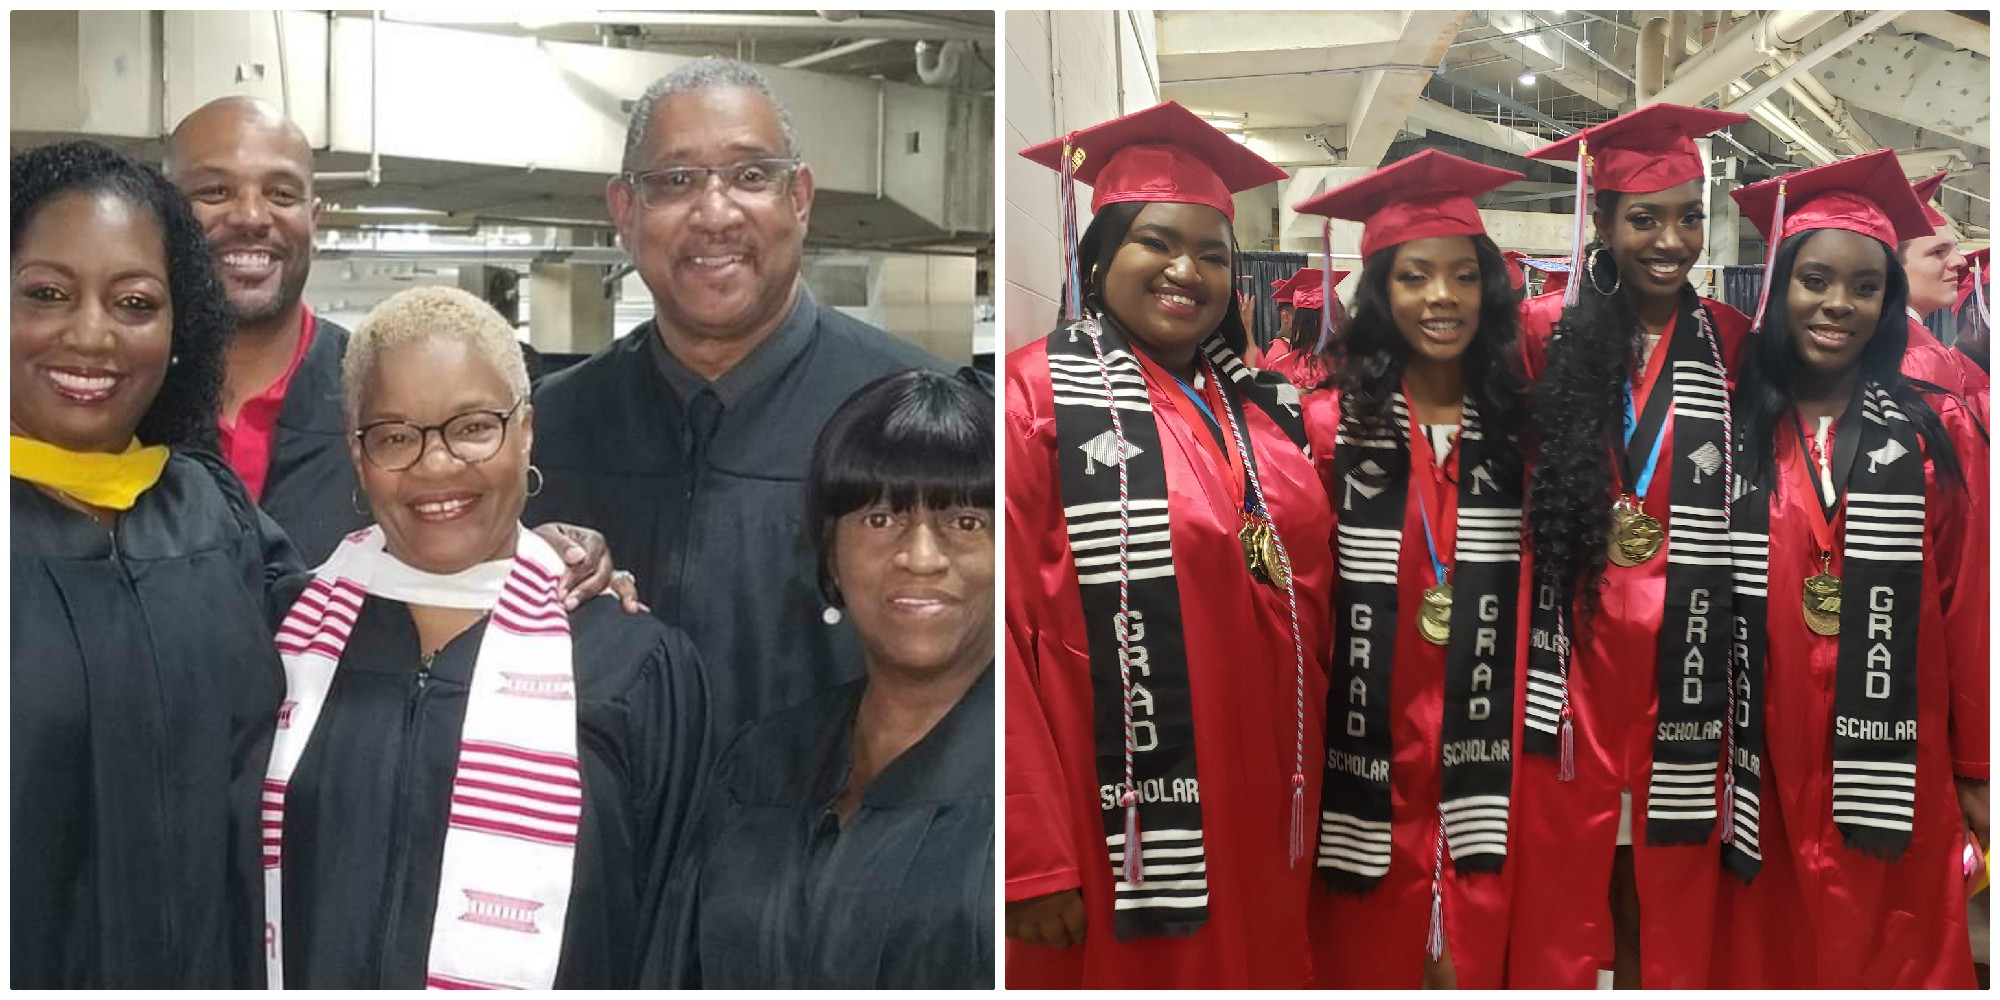 Austin-East High School's Legacy Graduation and Class of